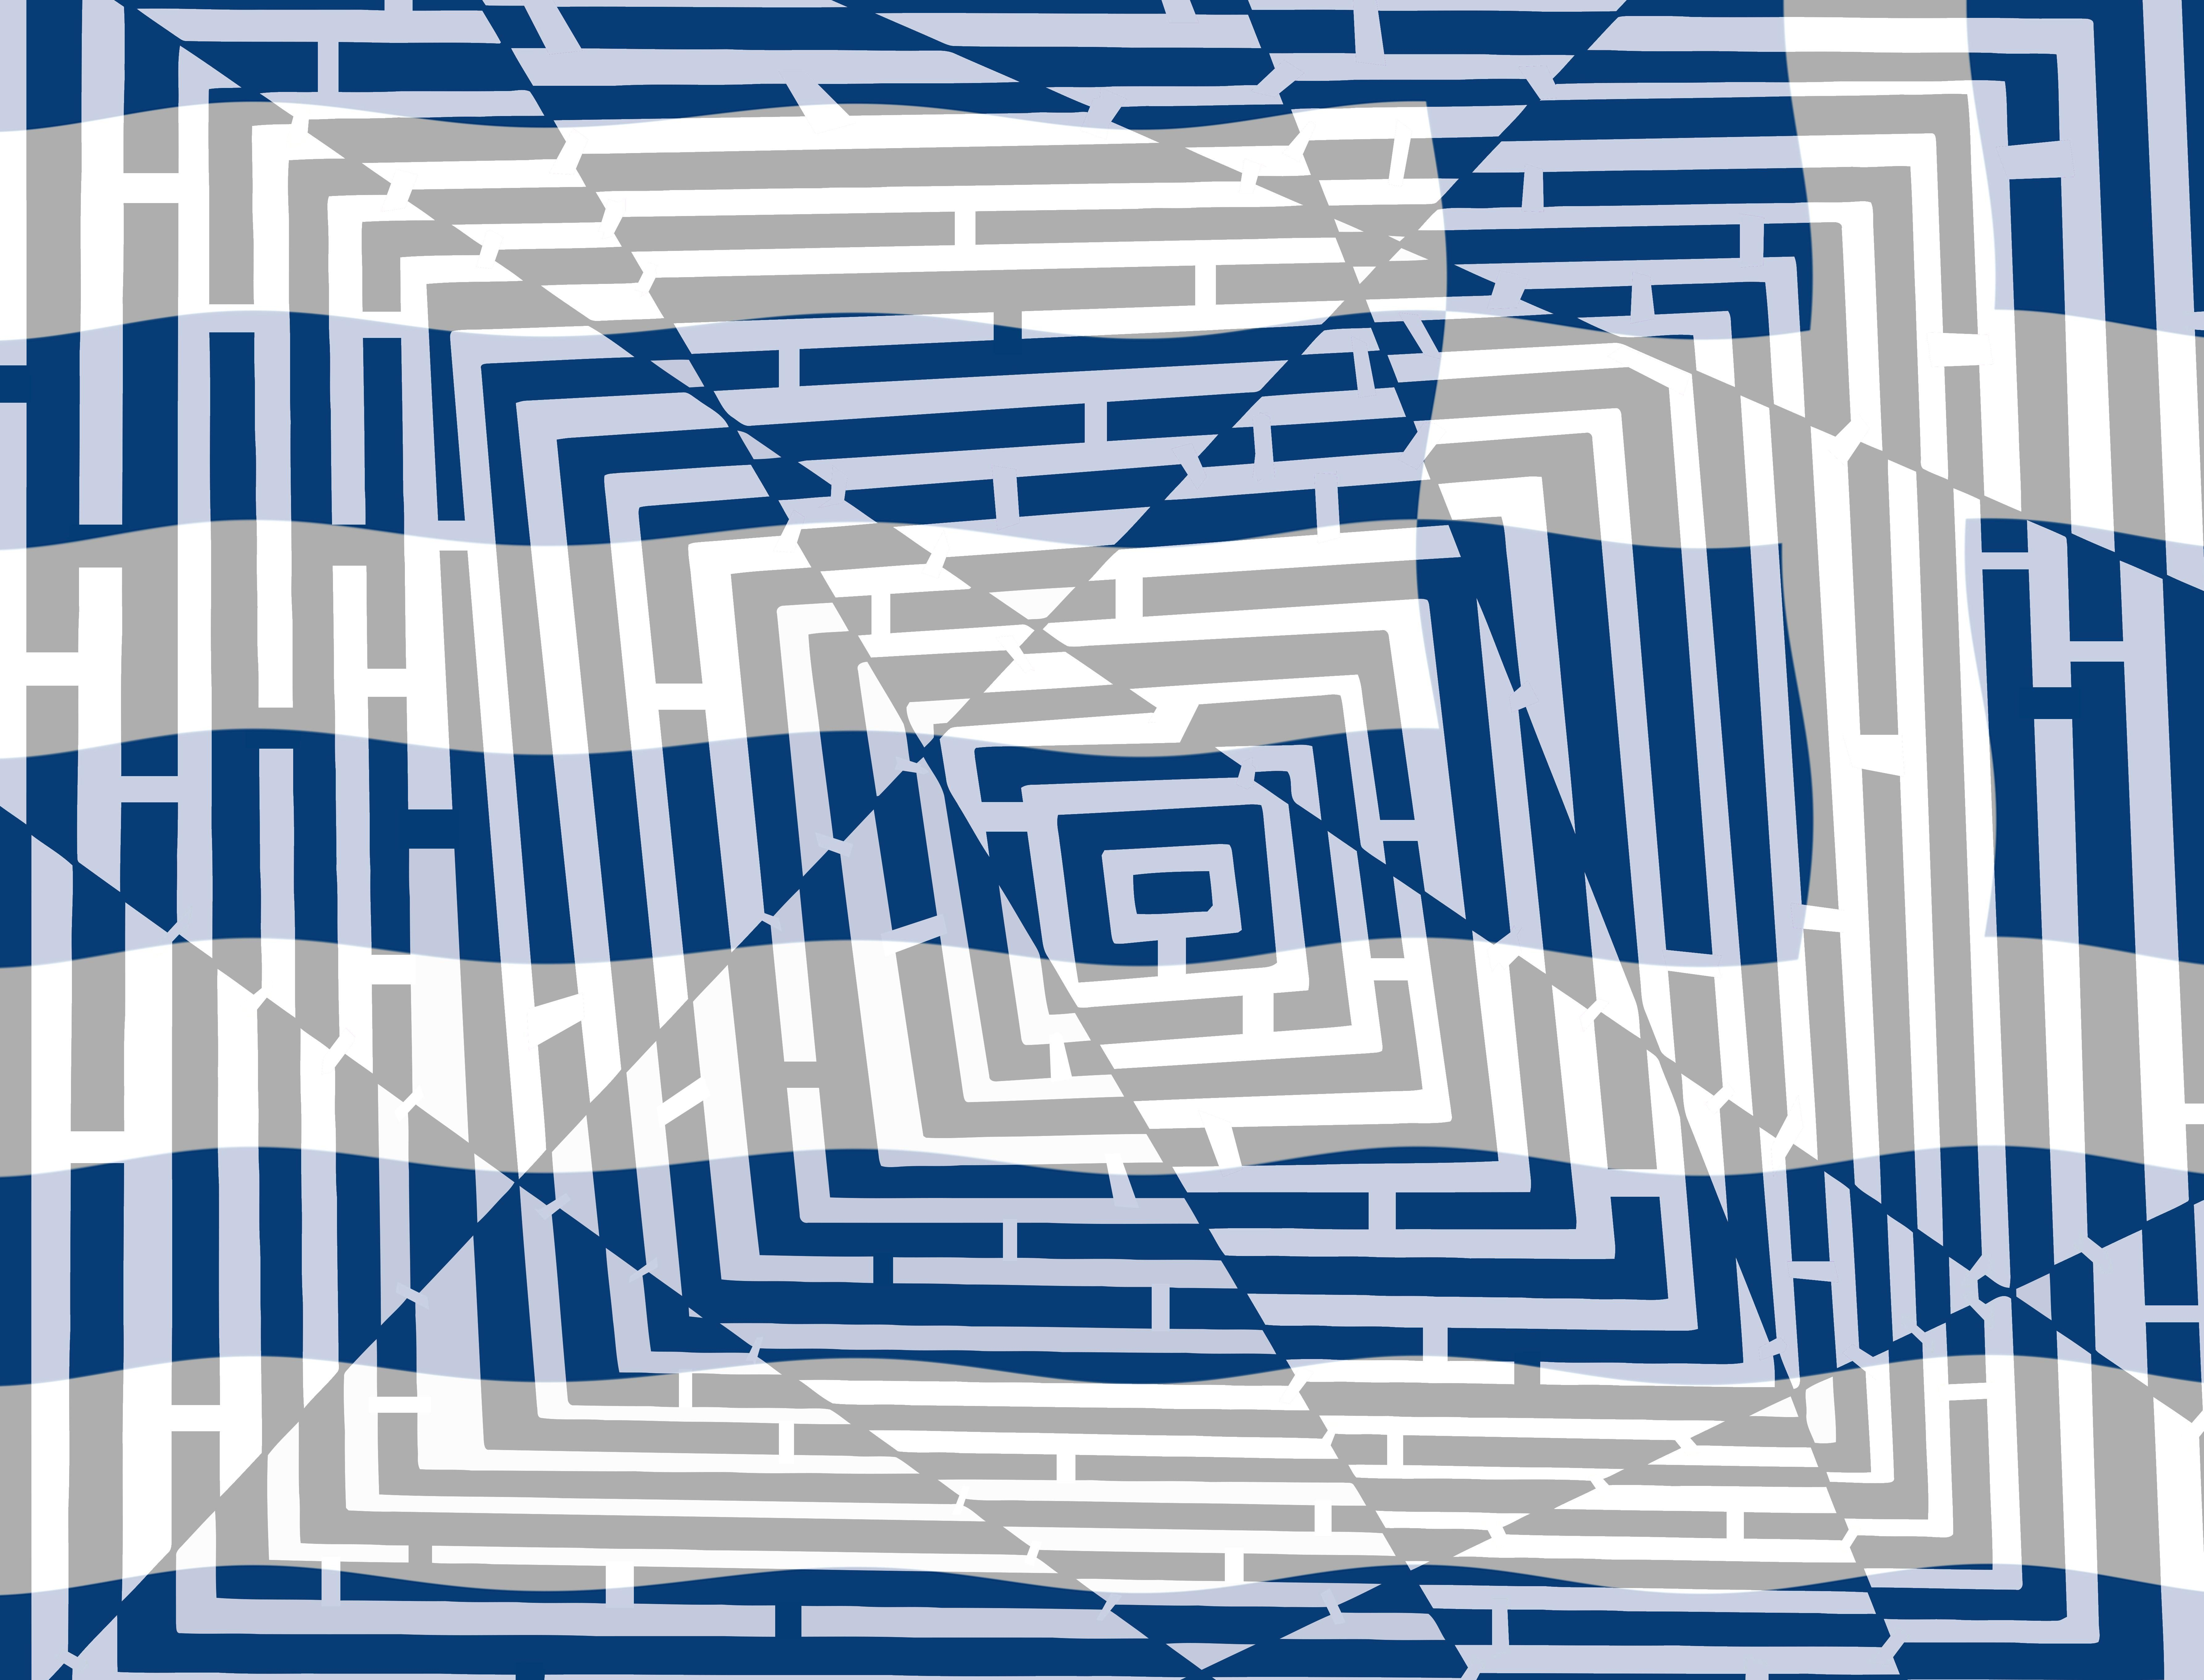 free picture  illustration  design  vector  abstract